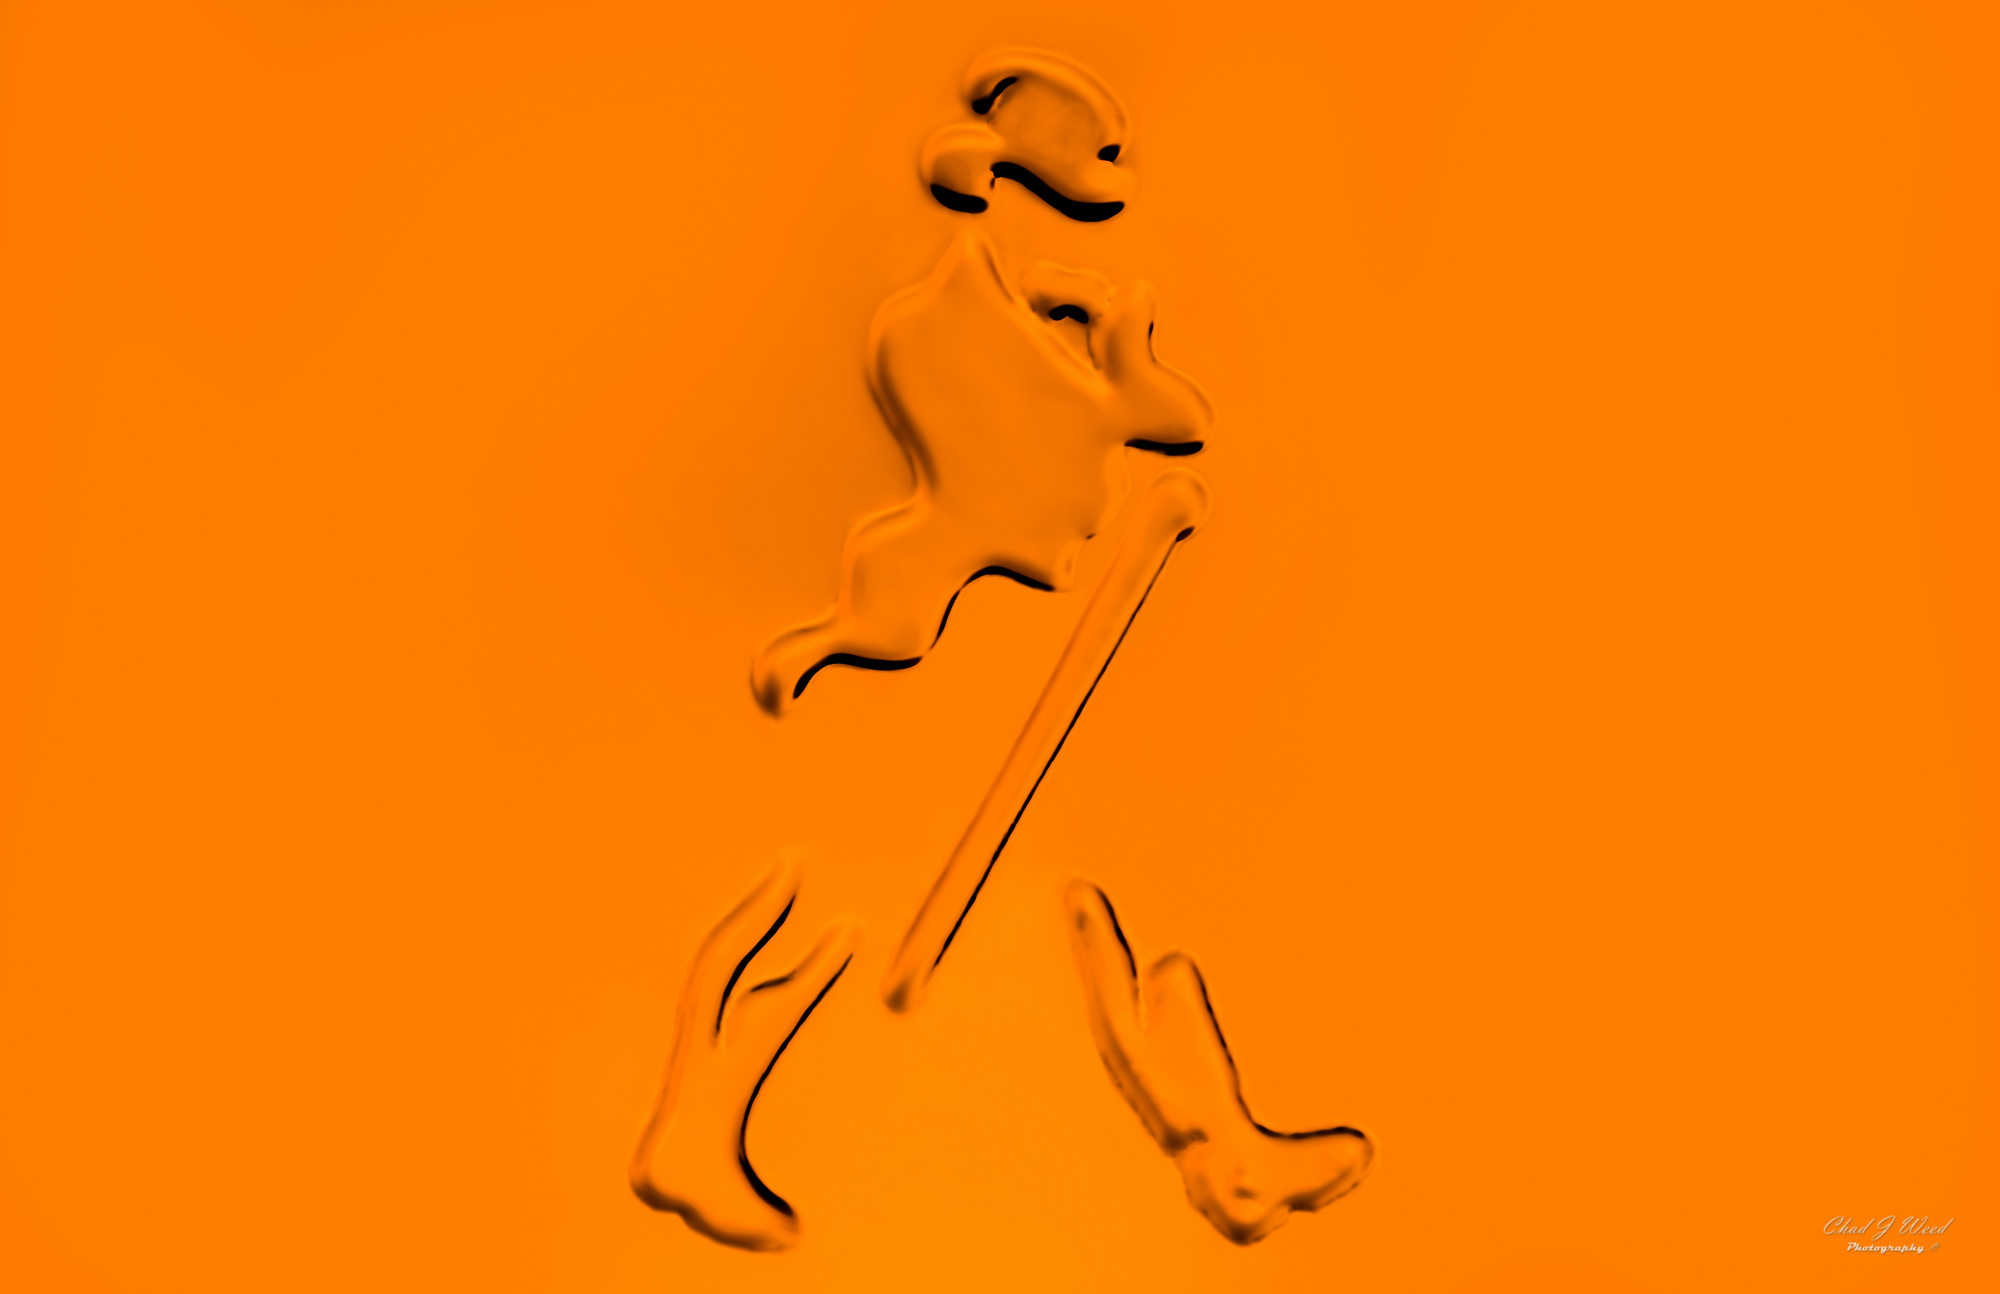 Johnnie Walker Scotch Walking Man Logo by Arizona Commercial Beverage Photographer Chad J Weed